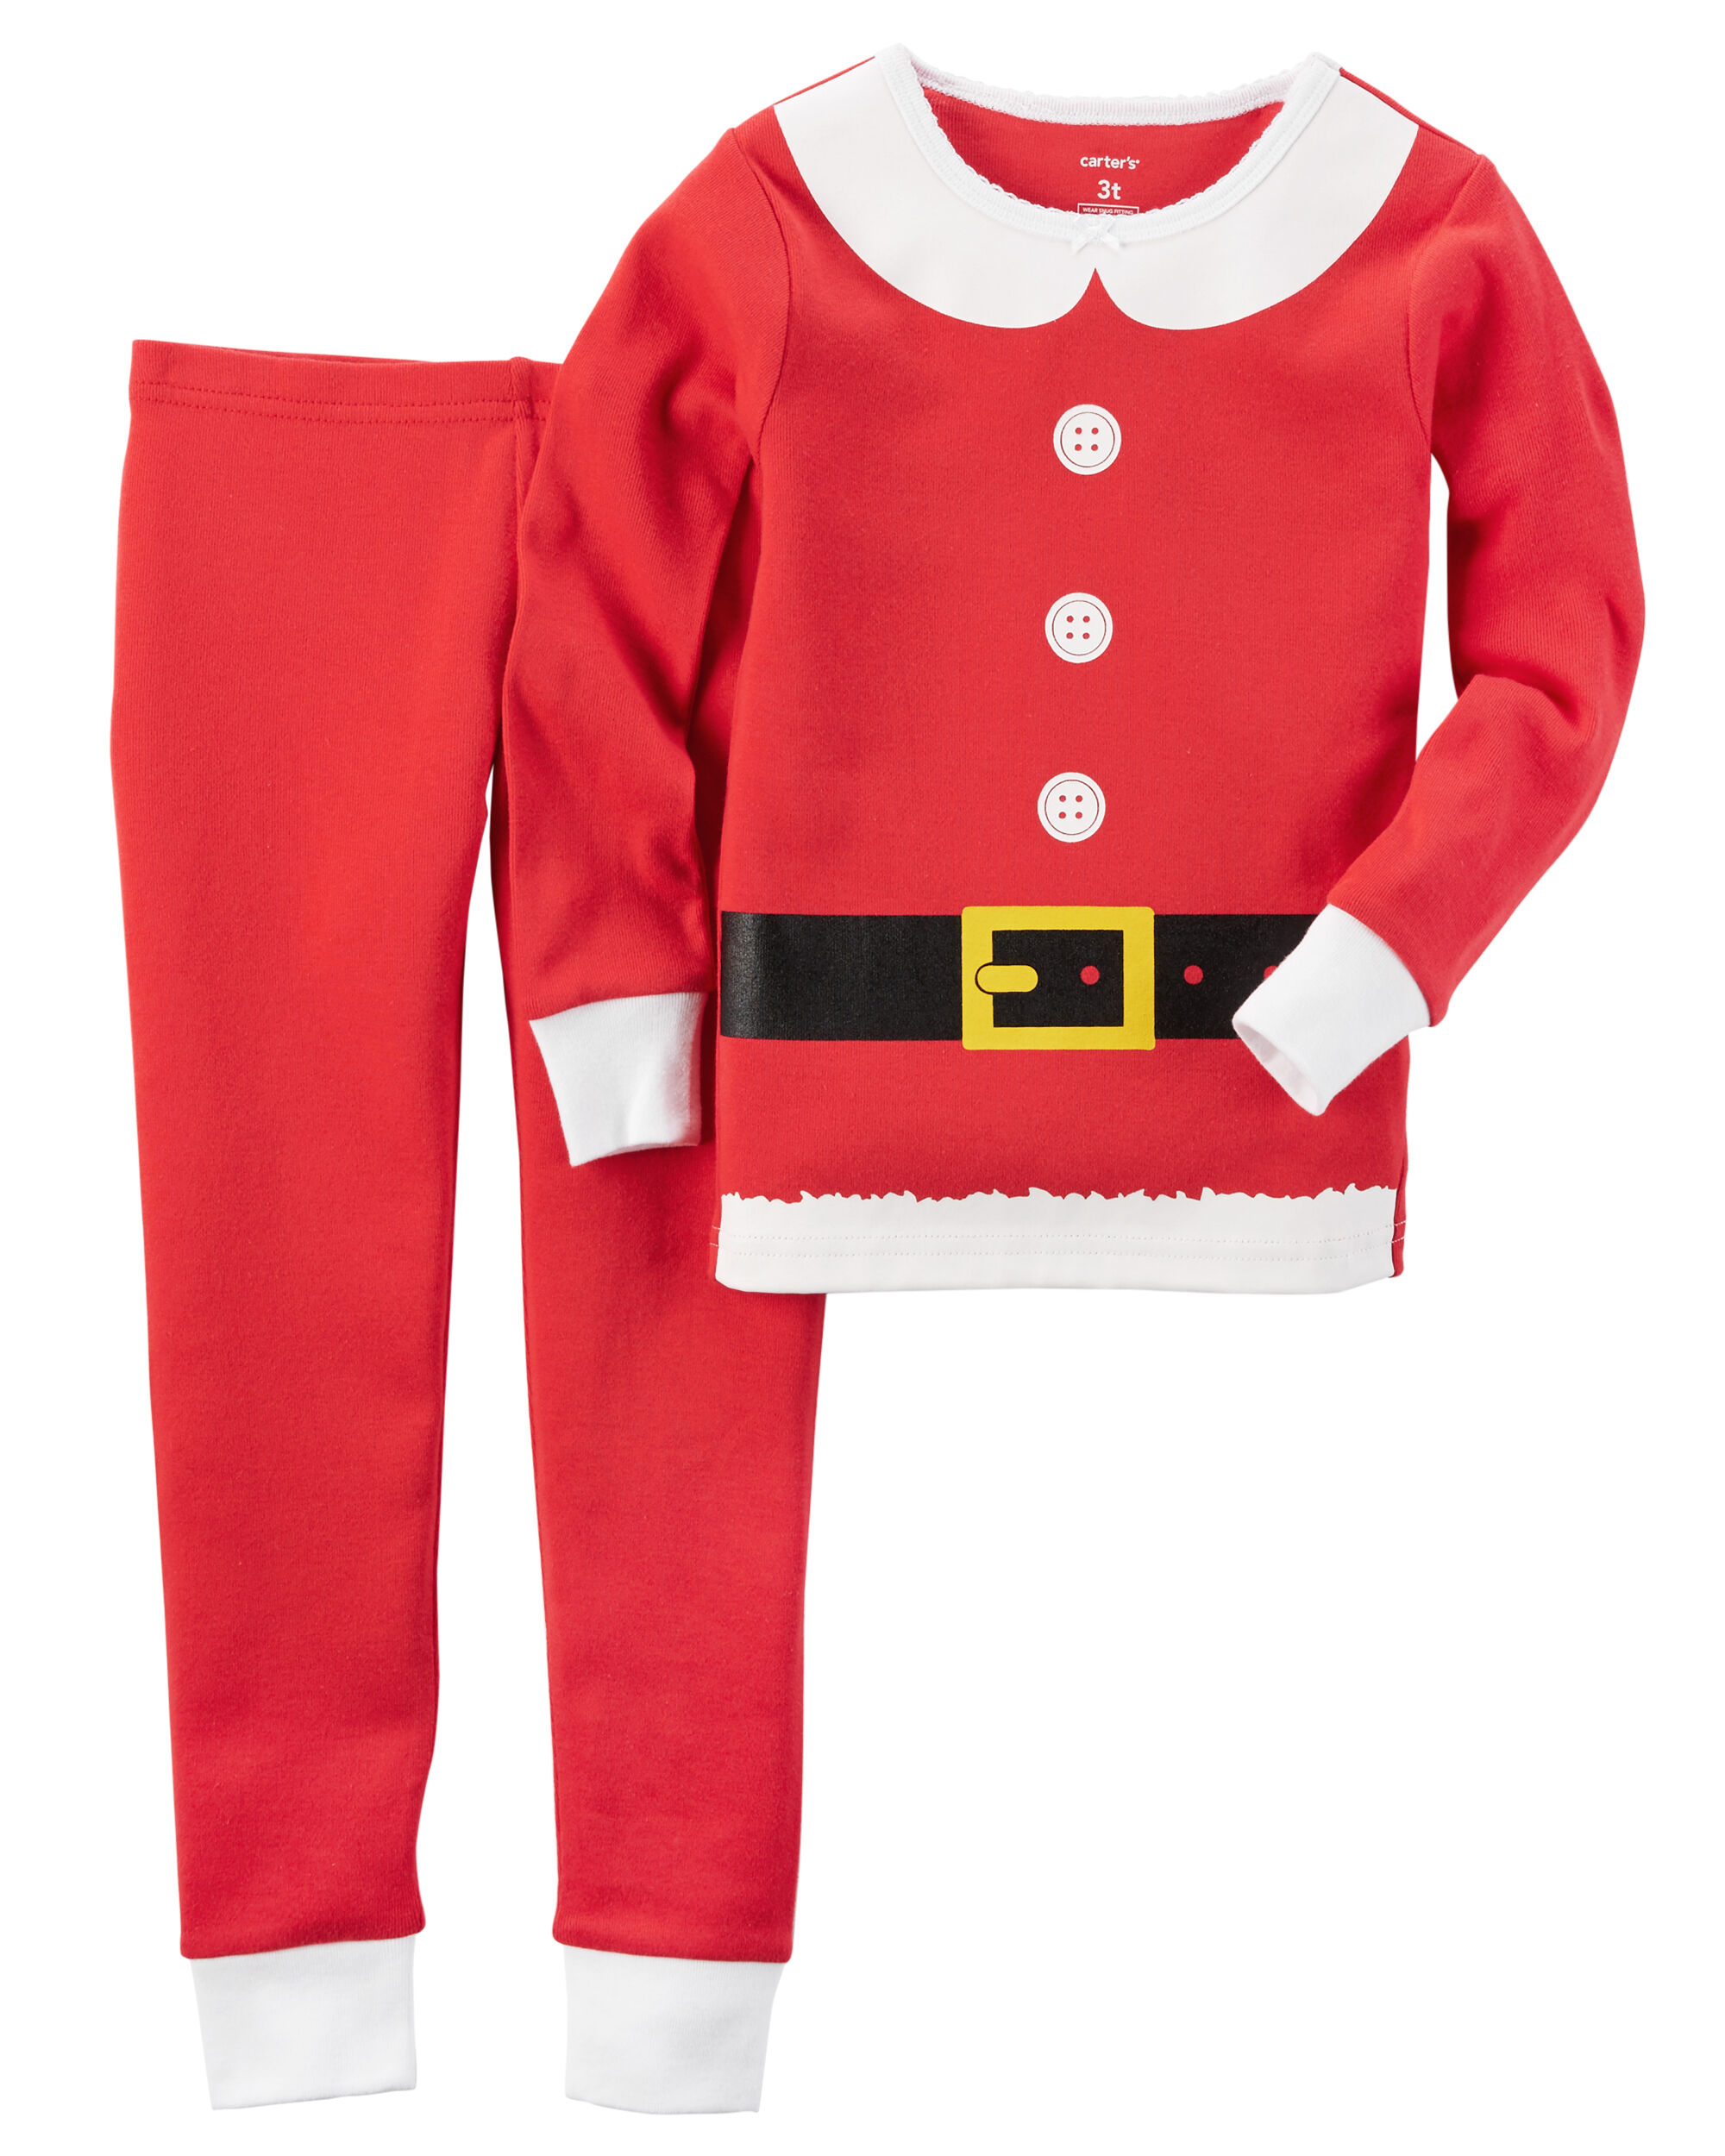 2 piece snug fit cotton christmas pjs loading zoom - Girls Christmas Nightgowns